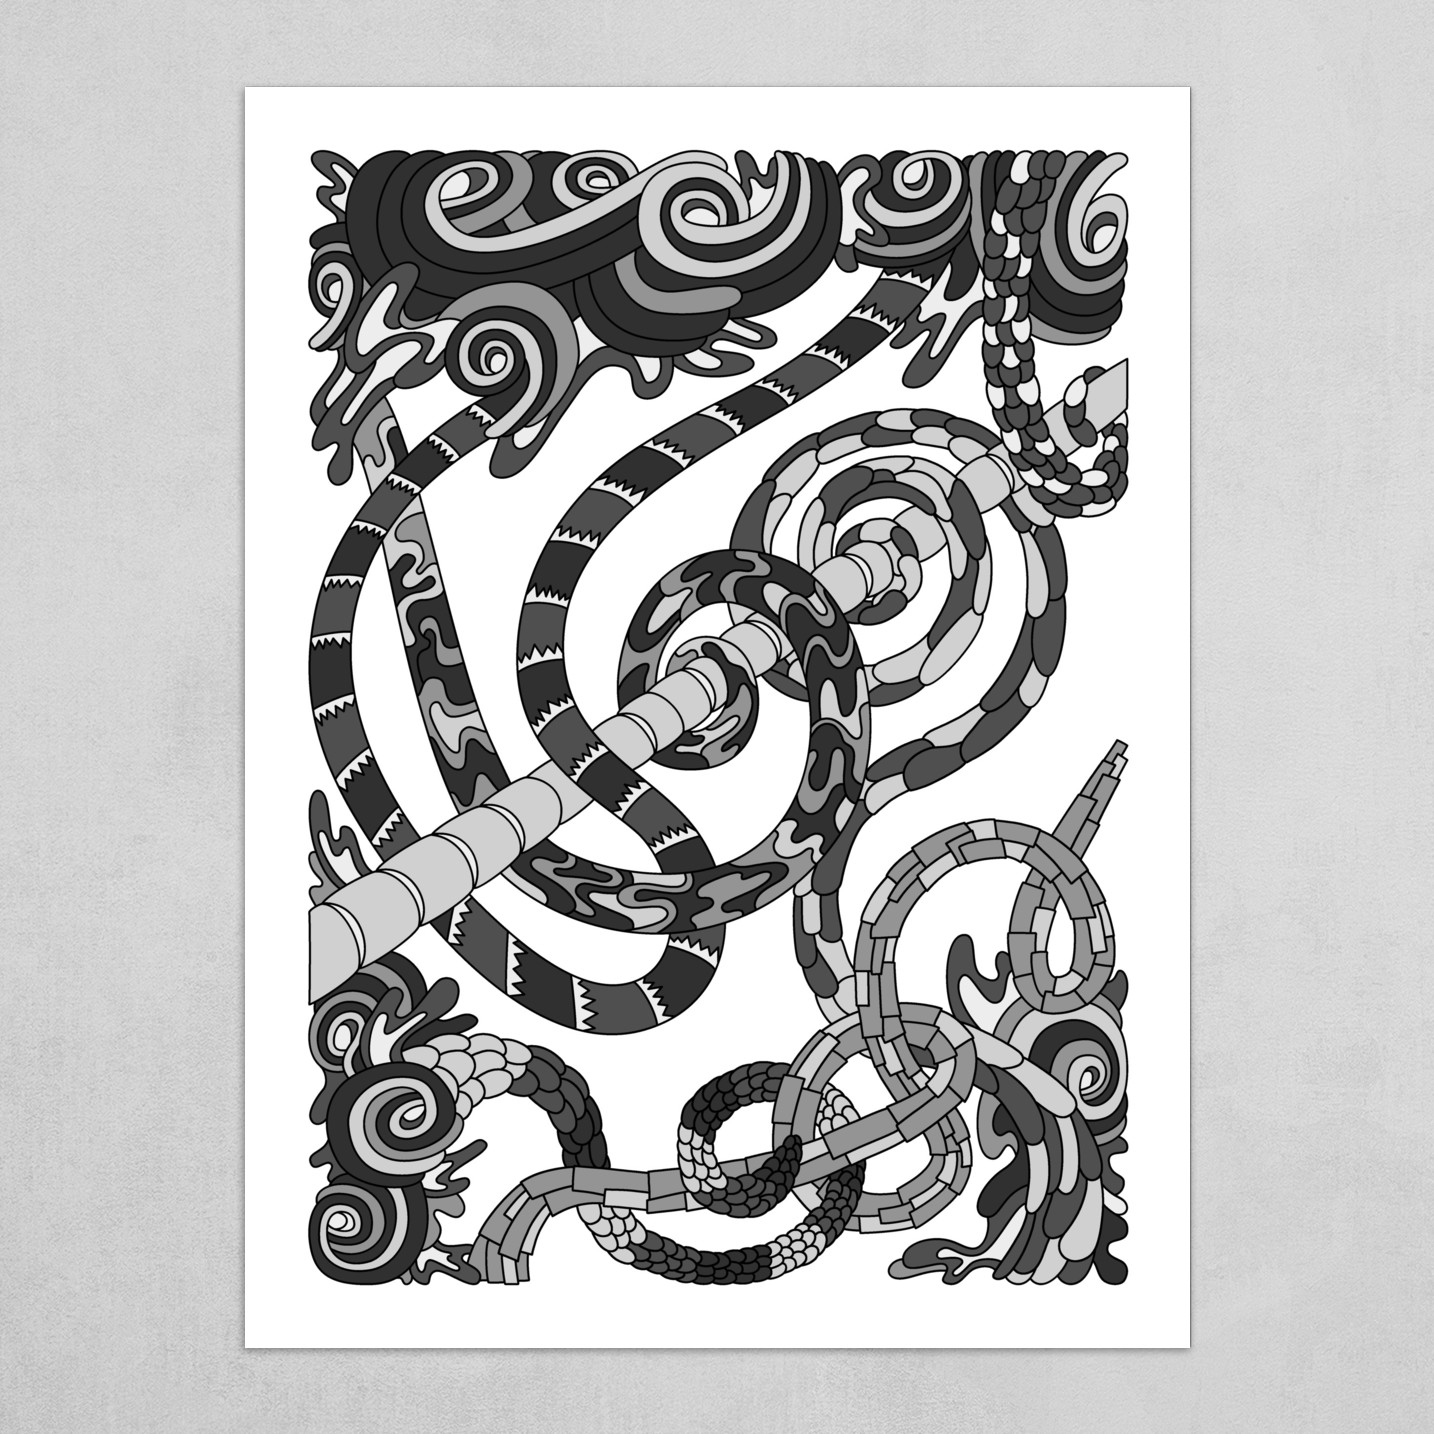 Wandering Abstract Line Art 46: Grayscale